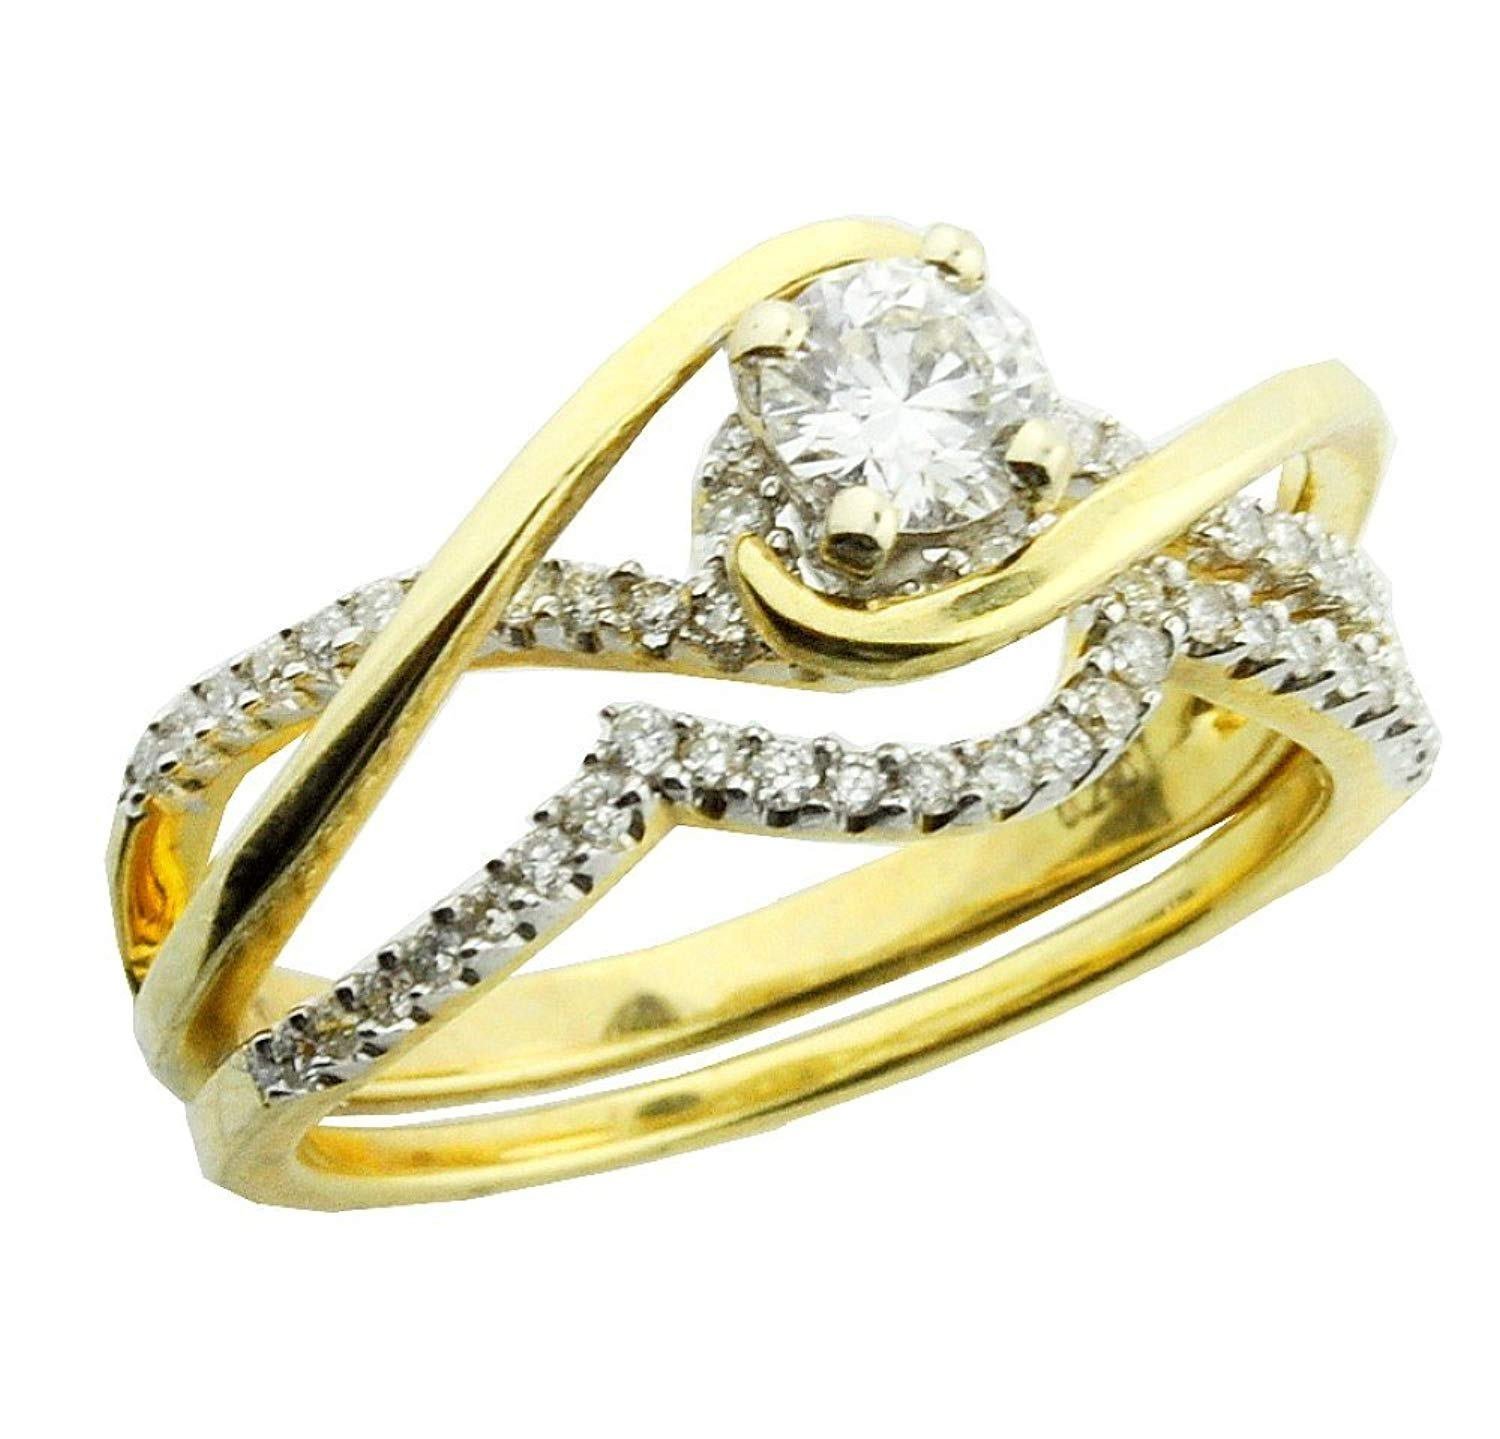 Midwest Jewellery 14K Gold Bypass Style Wedding Ring Set 0.59cttw Diamonds Engagement Ring and Band (i2/i3, i/j)